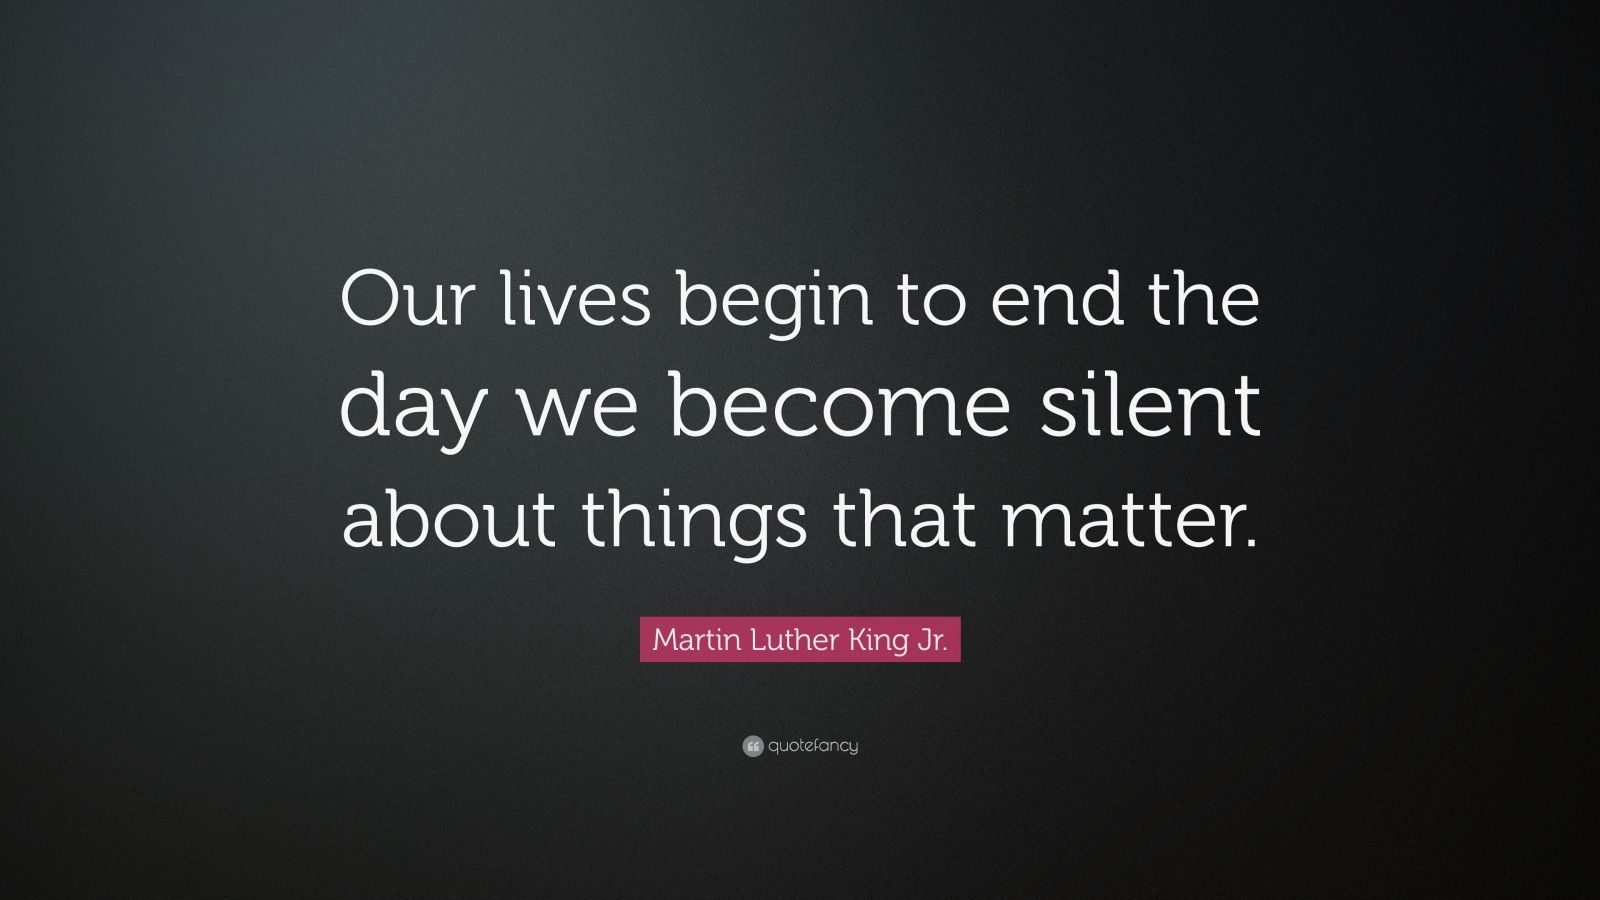 Martin Luther King Wallpaper Quotes Martin Luther King Jr Quote Our Lives Begin To End The